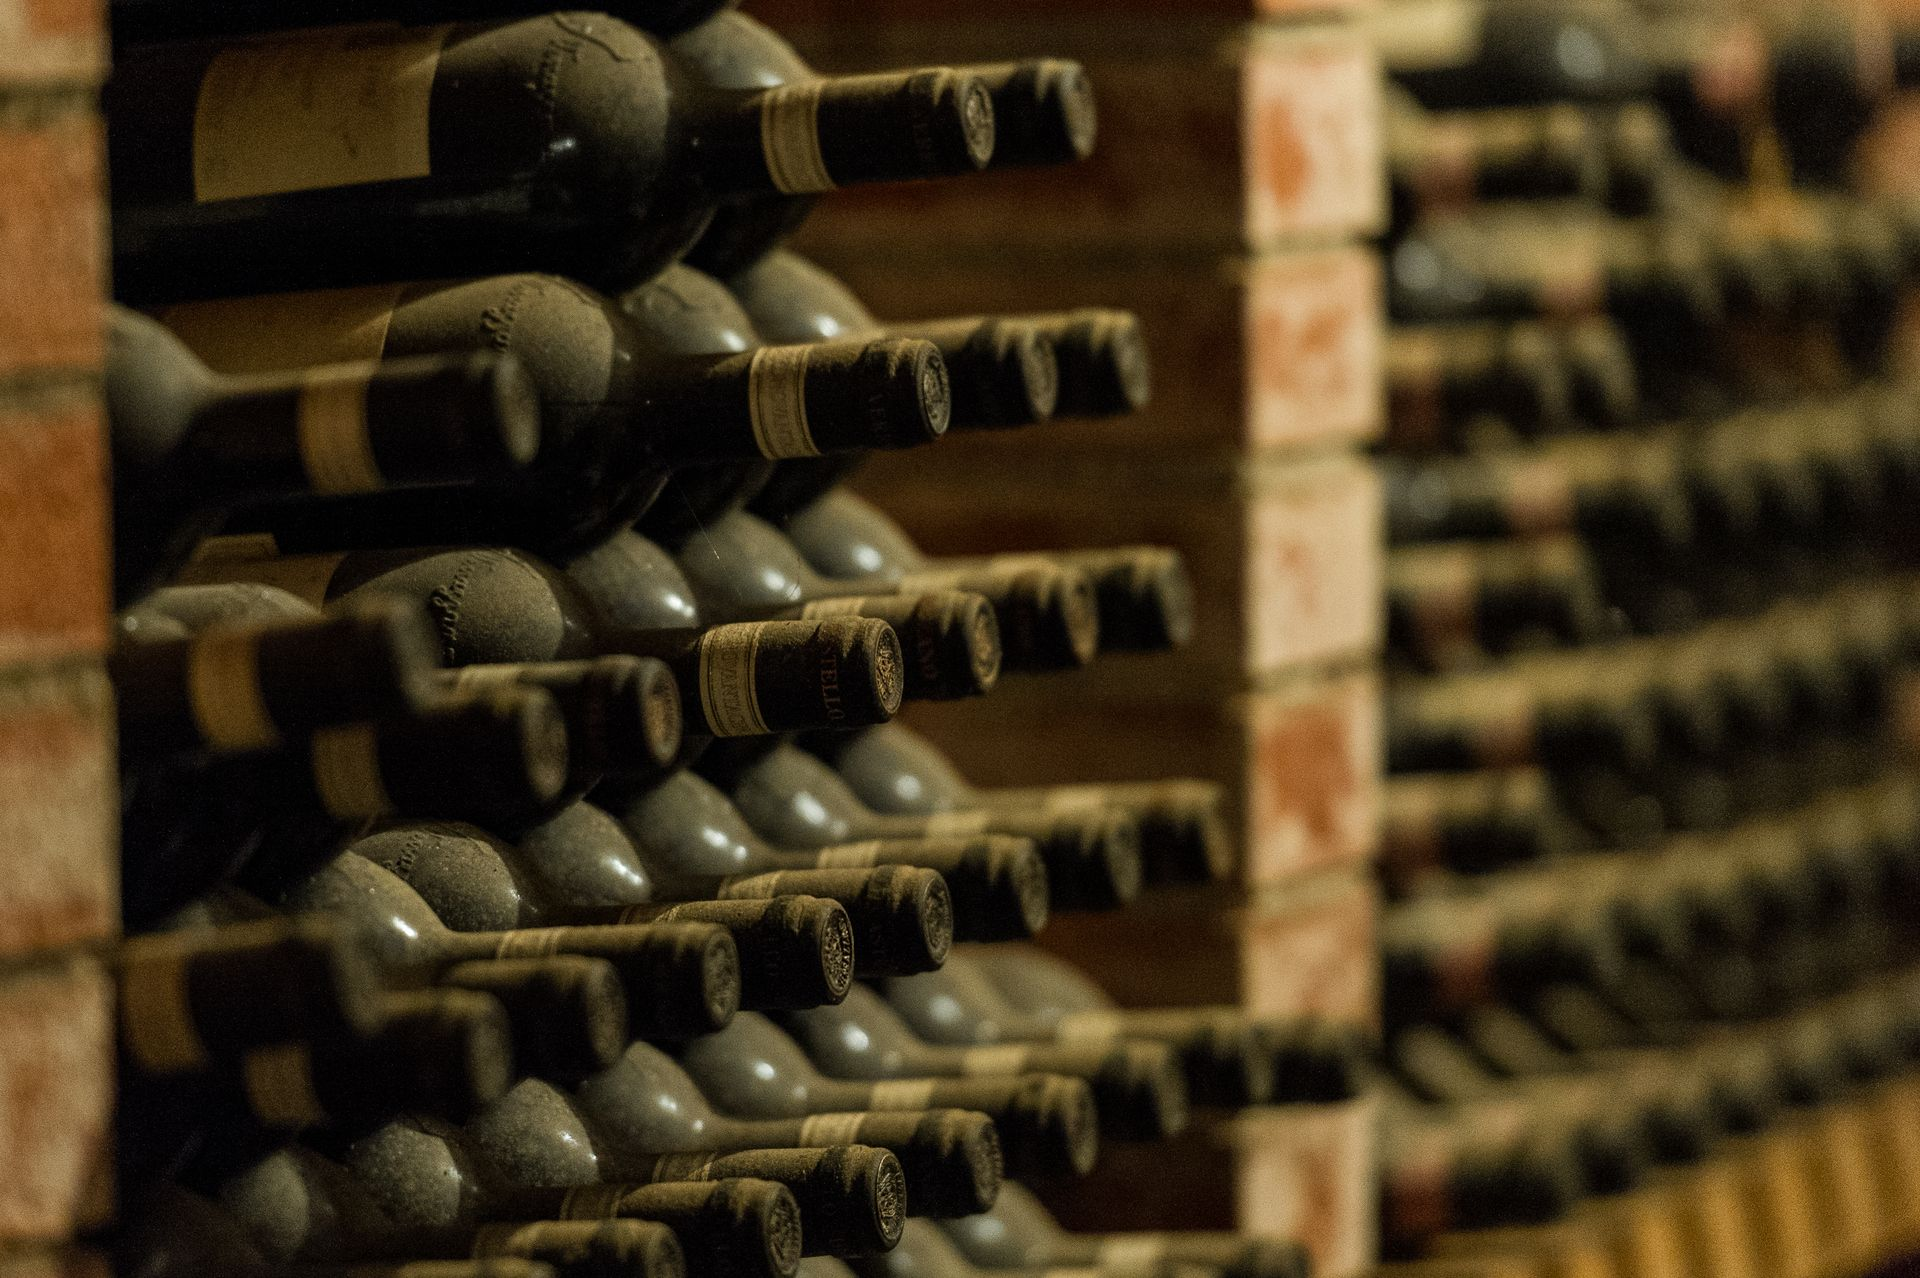 Ancient wine cellar by marios forsos downloaded from px